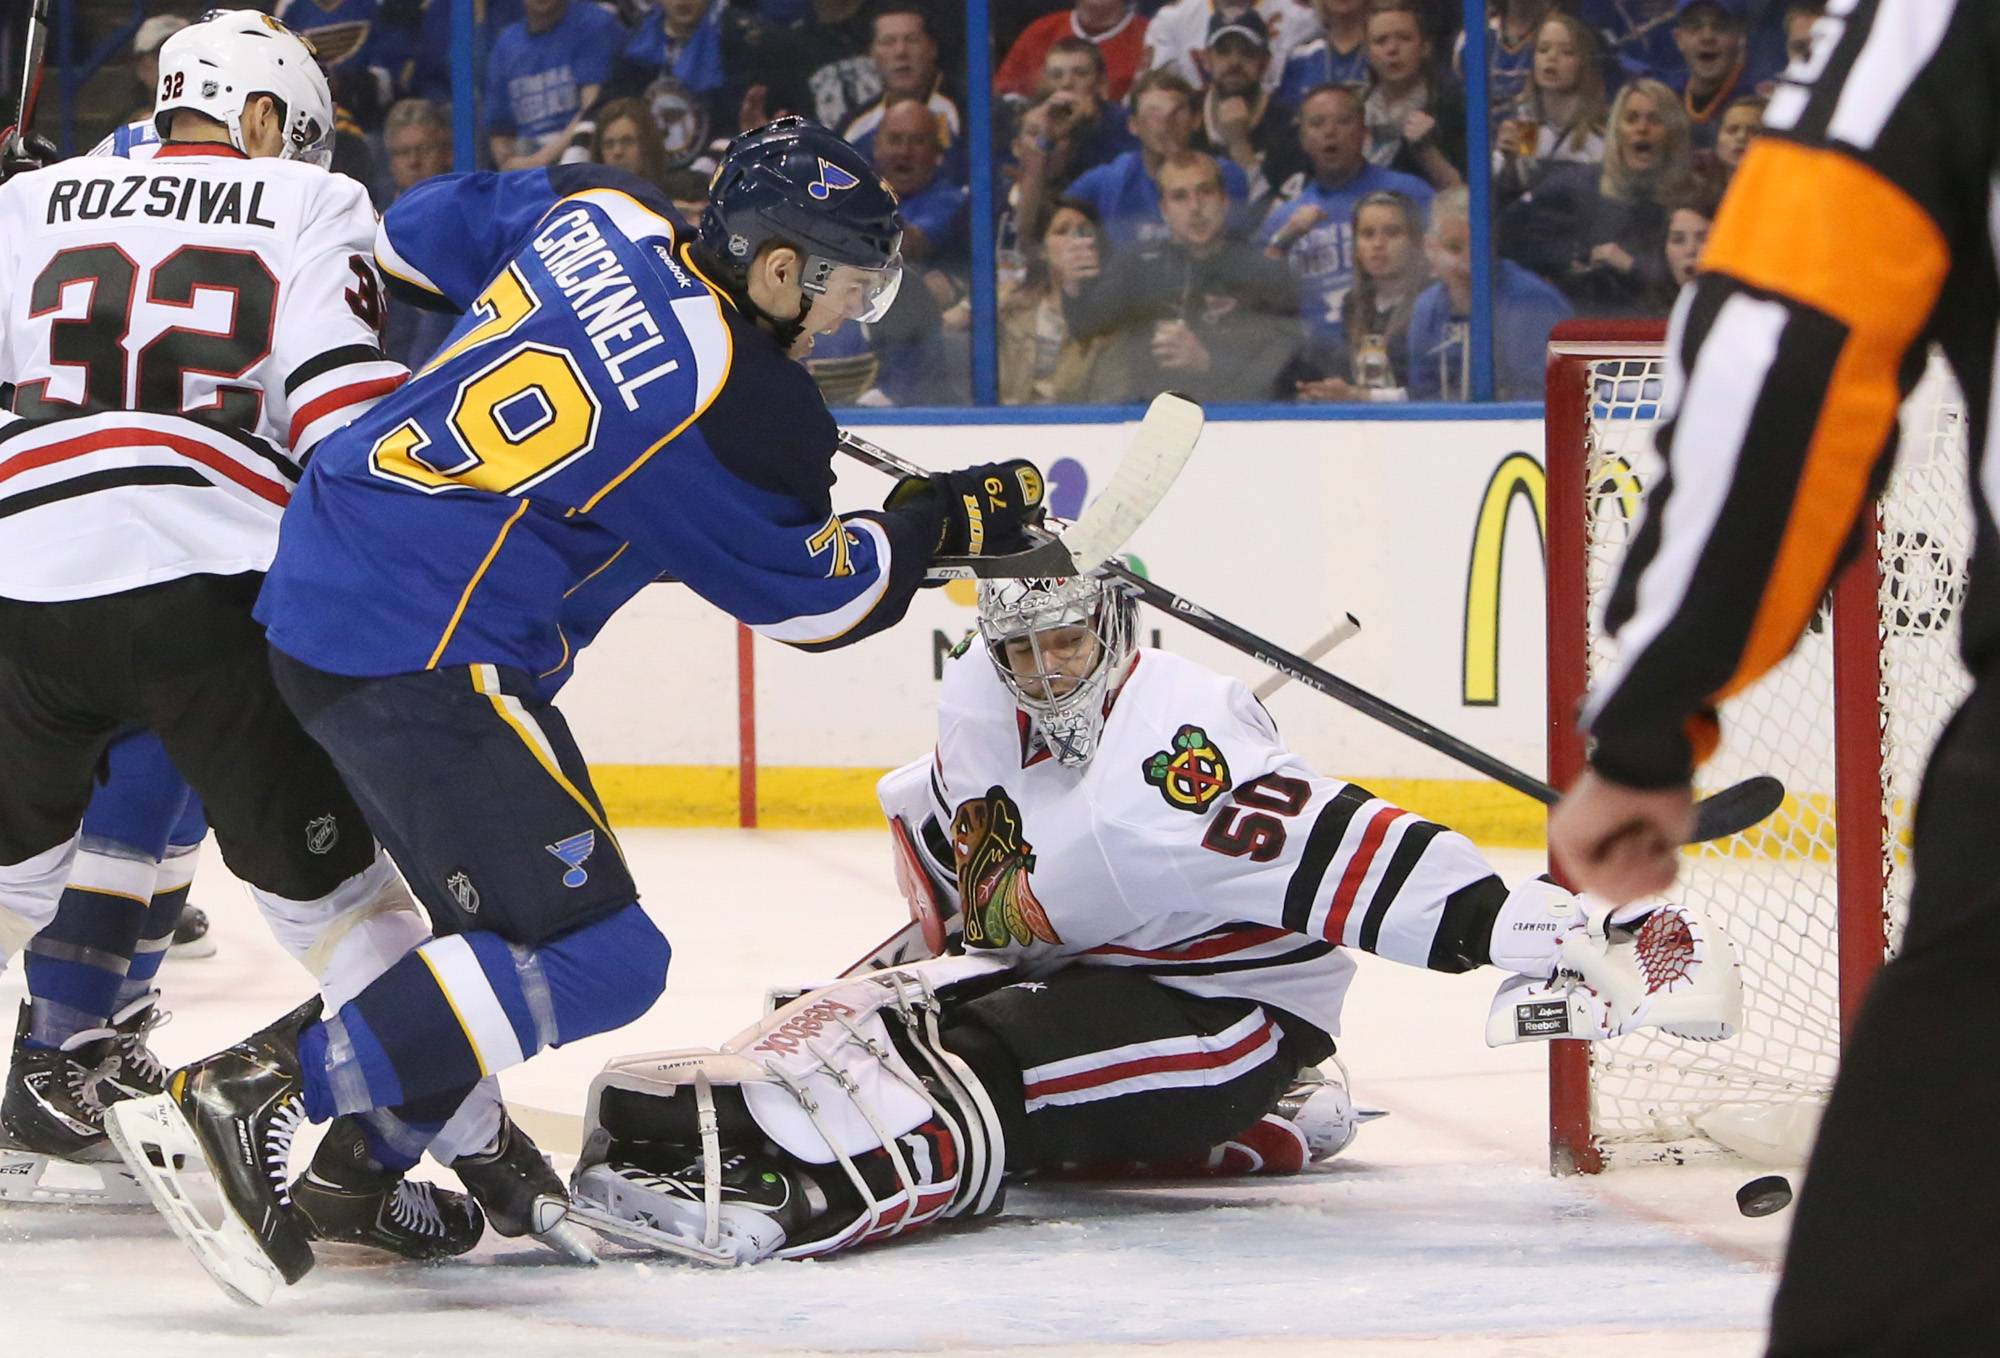 St. Louis Blues right wing Adam Cracknell, left, scores past Chicago Blackhawks goaltender Corey Crawford during the first period.